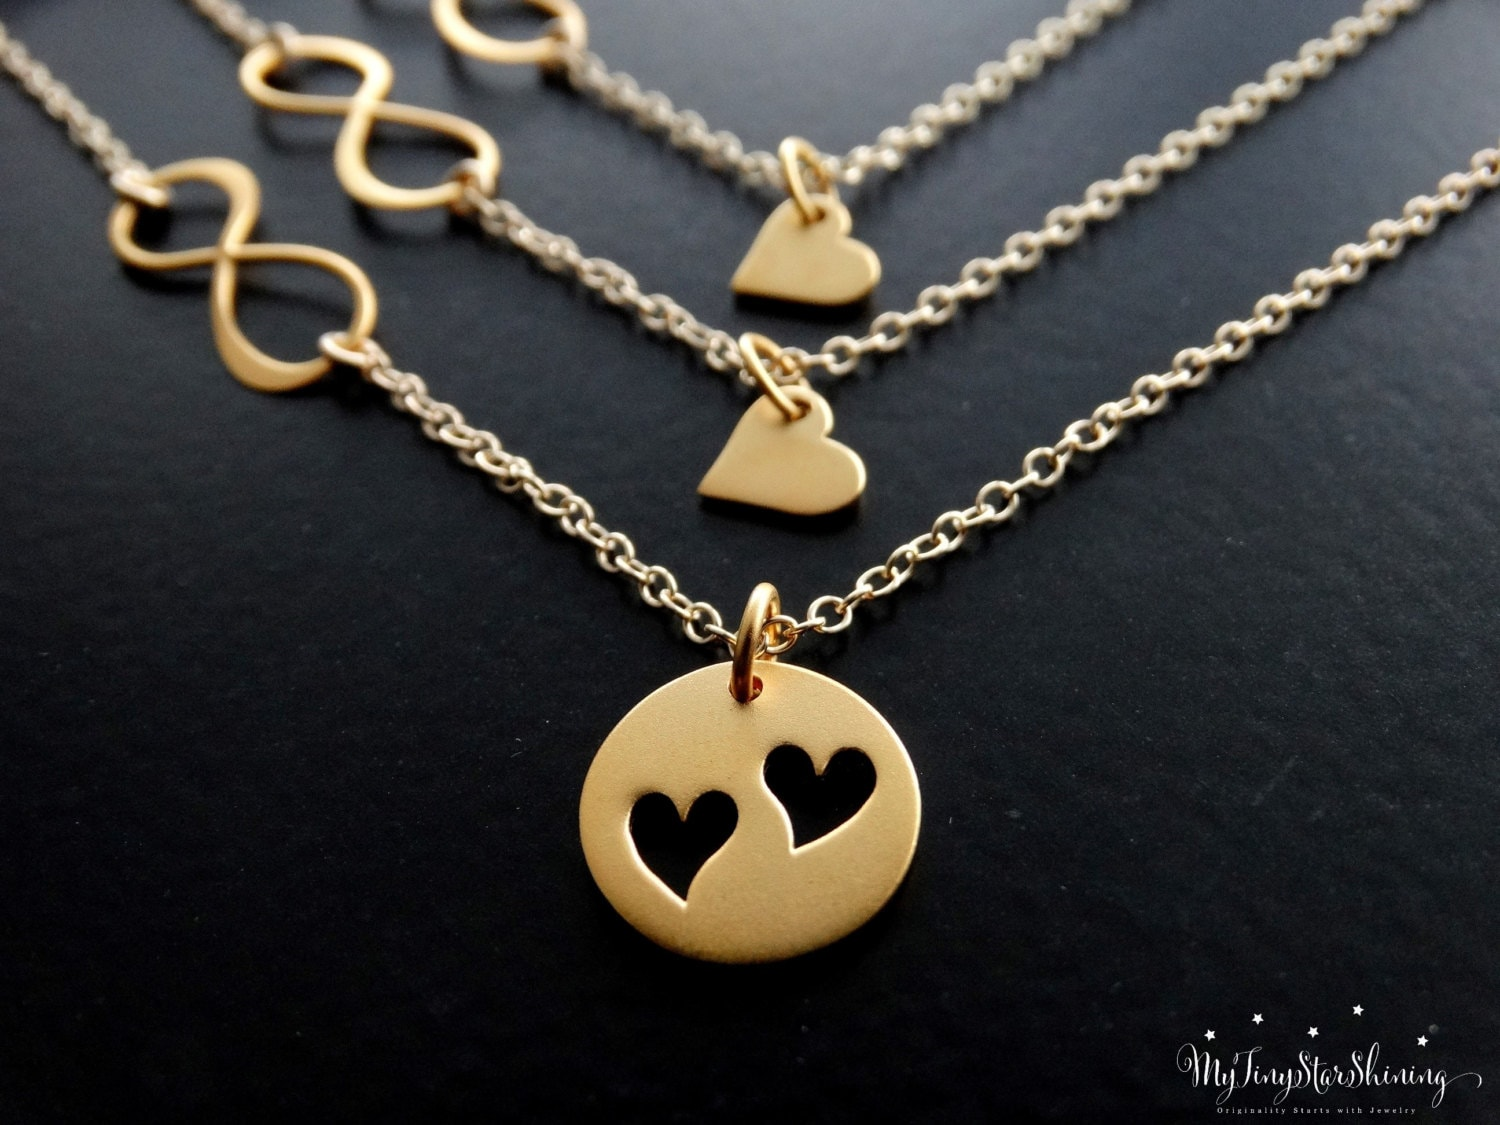 women return usm daughter sv necklace op pendants jewelry to co necklaces tiffany tag for double infinity pendant mother mini heart